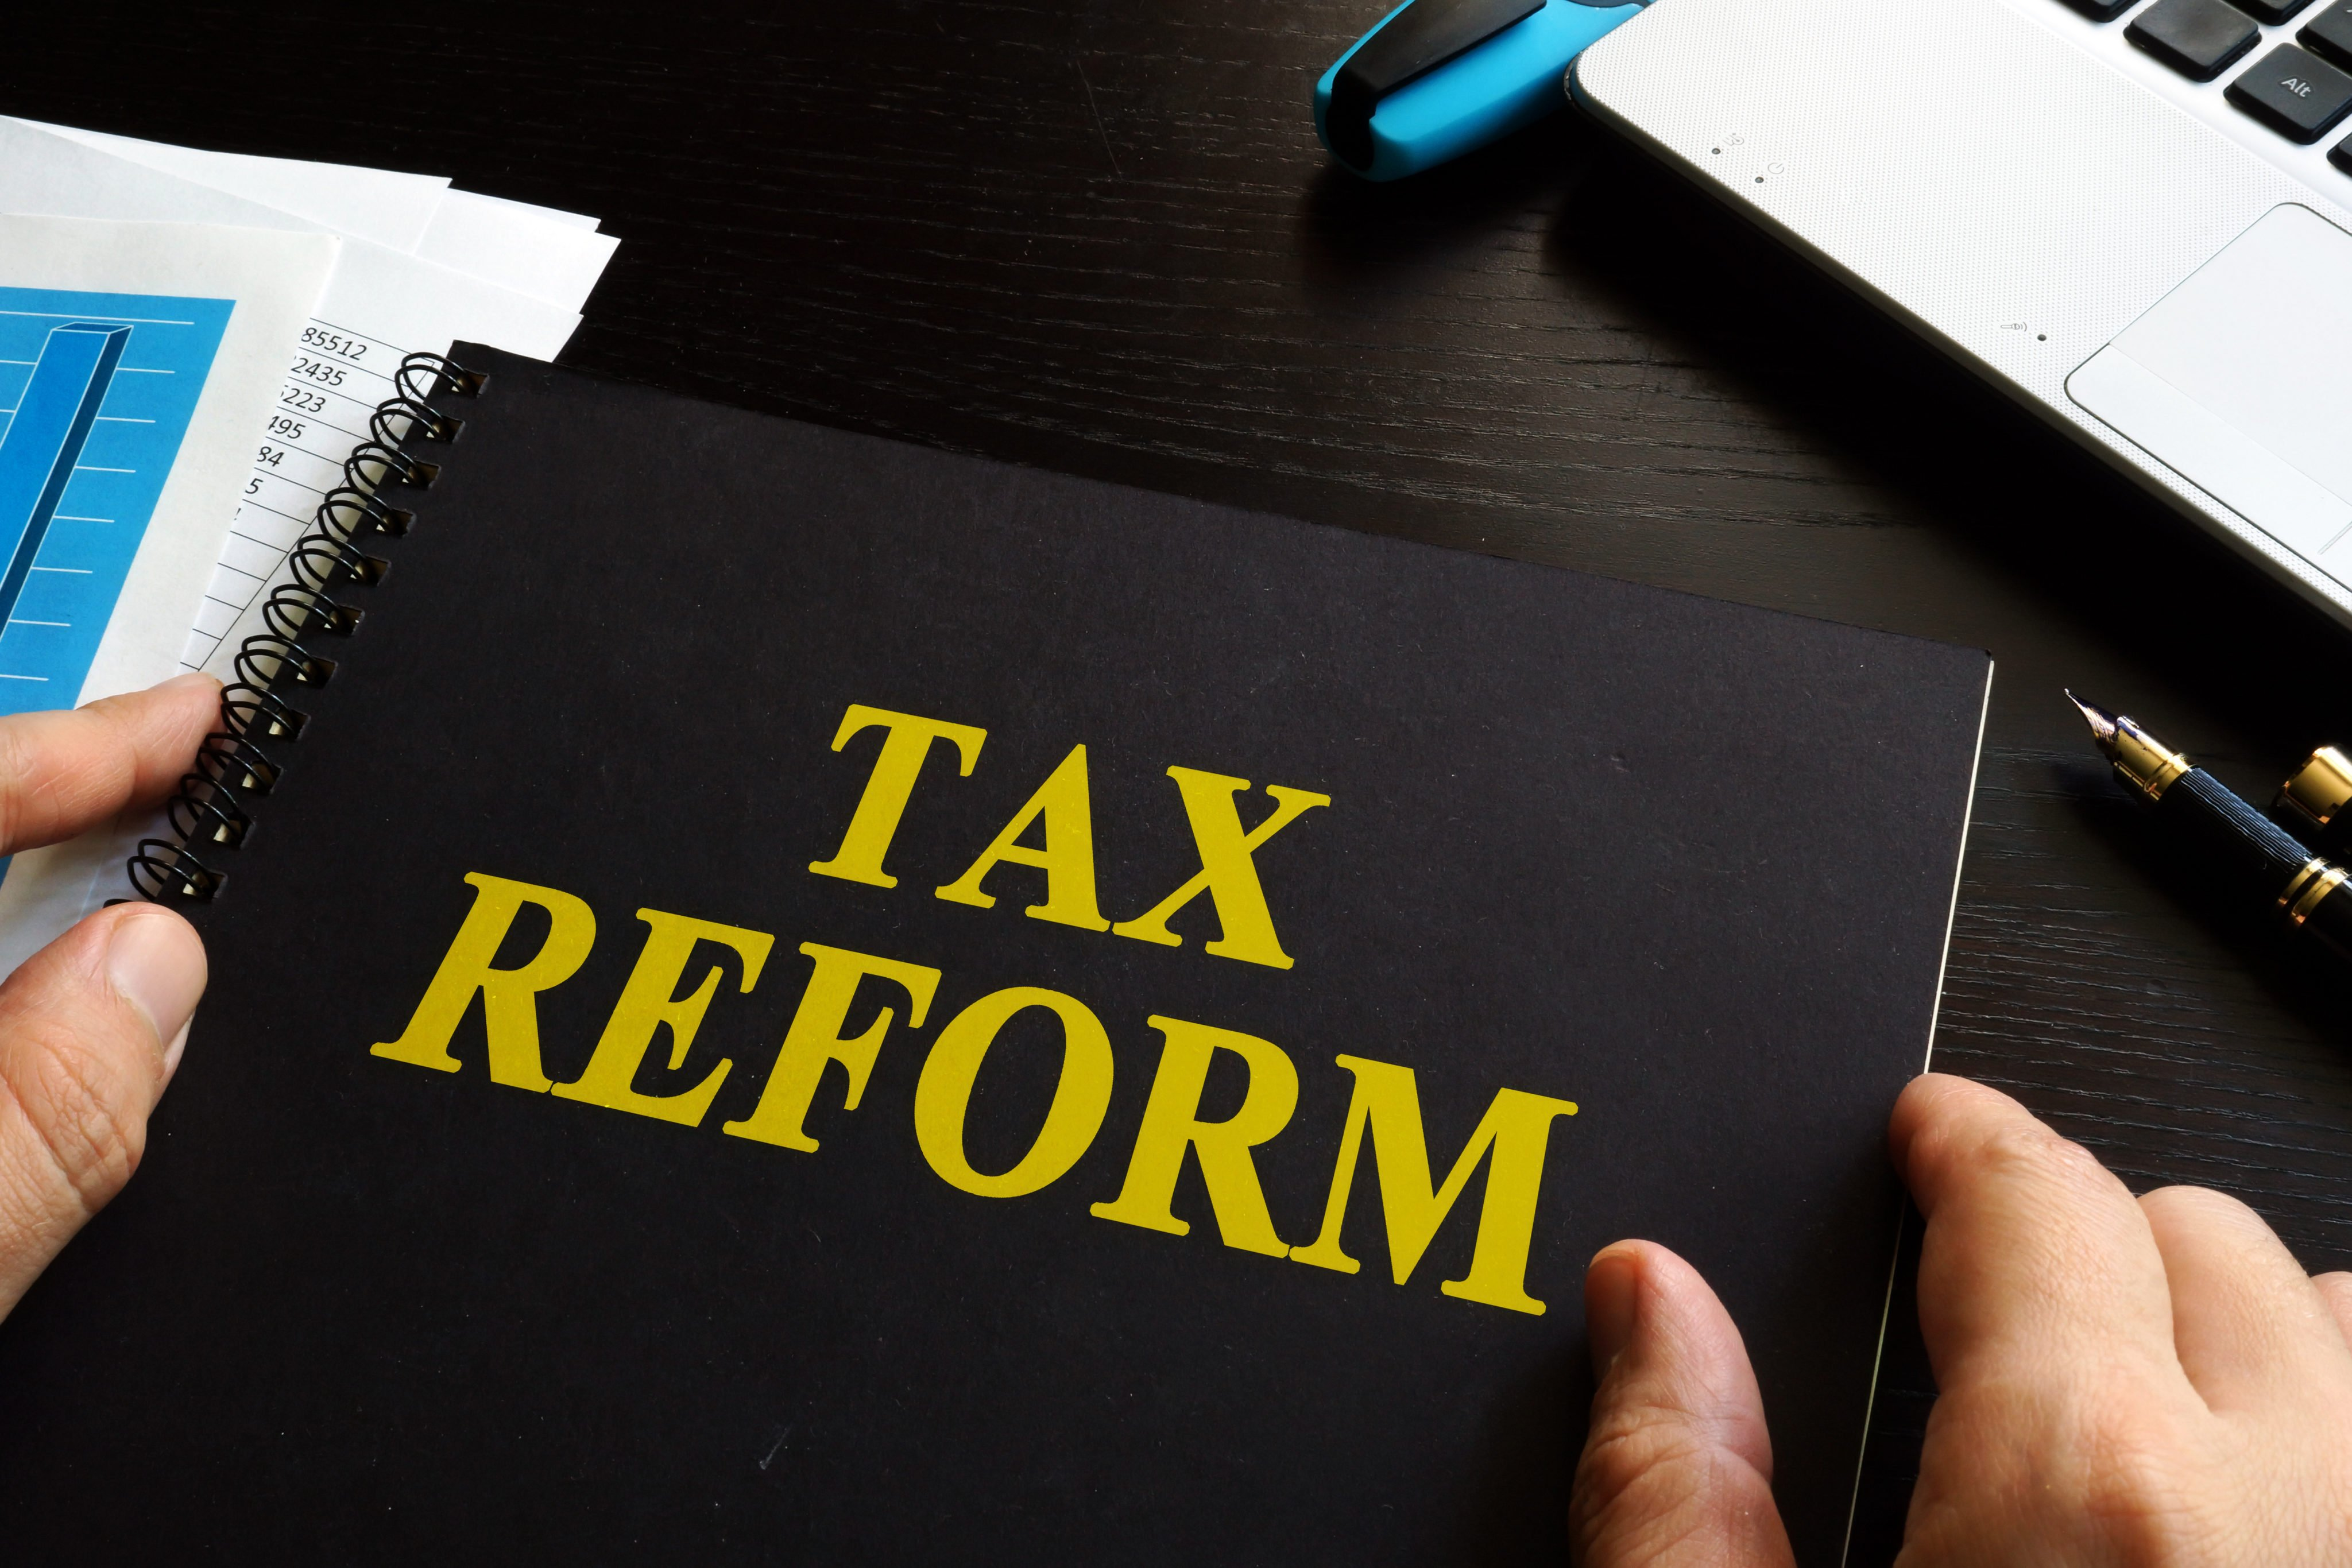 30 years after the Tax Reform Act: Still aiming for a better tax system